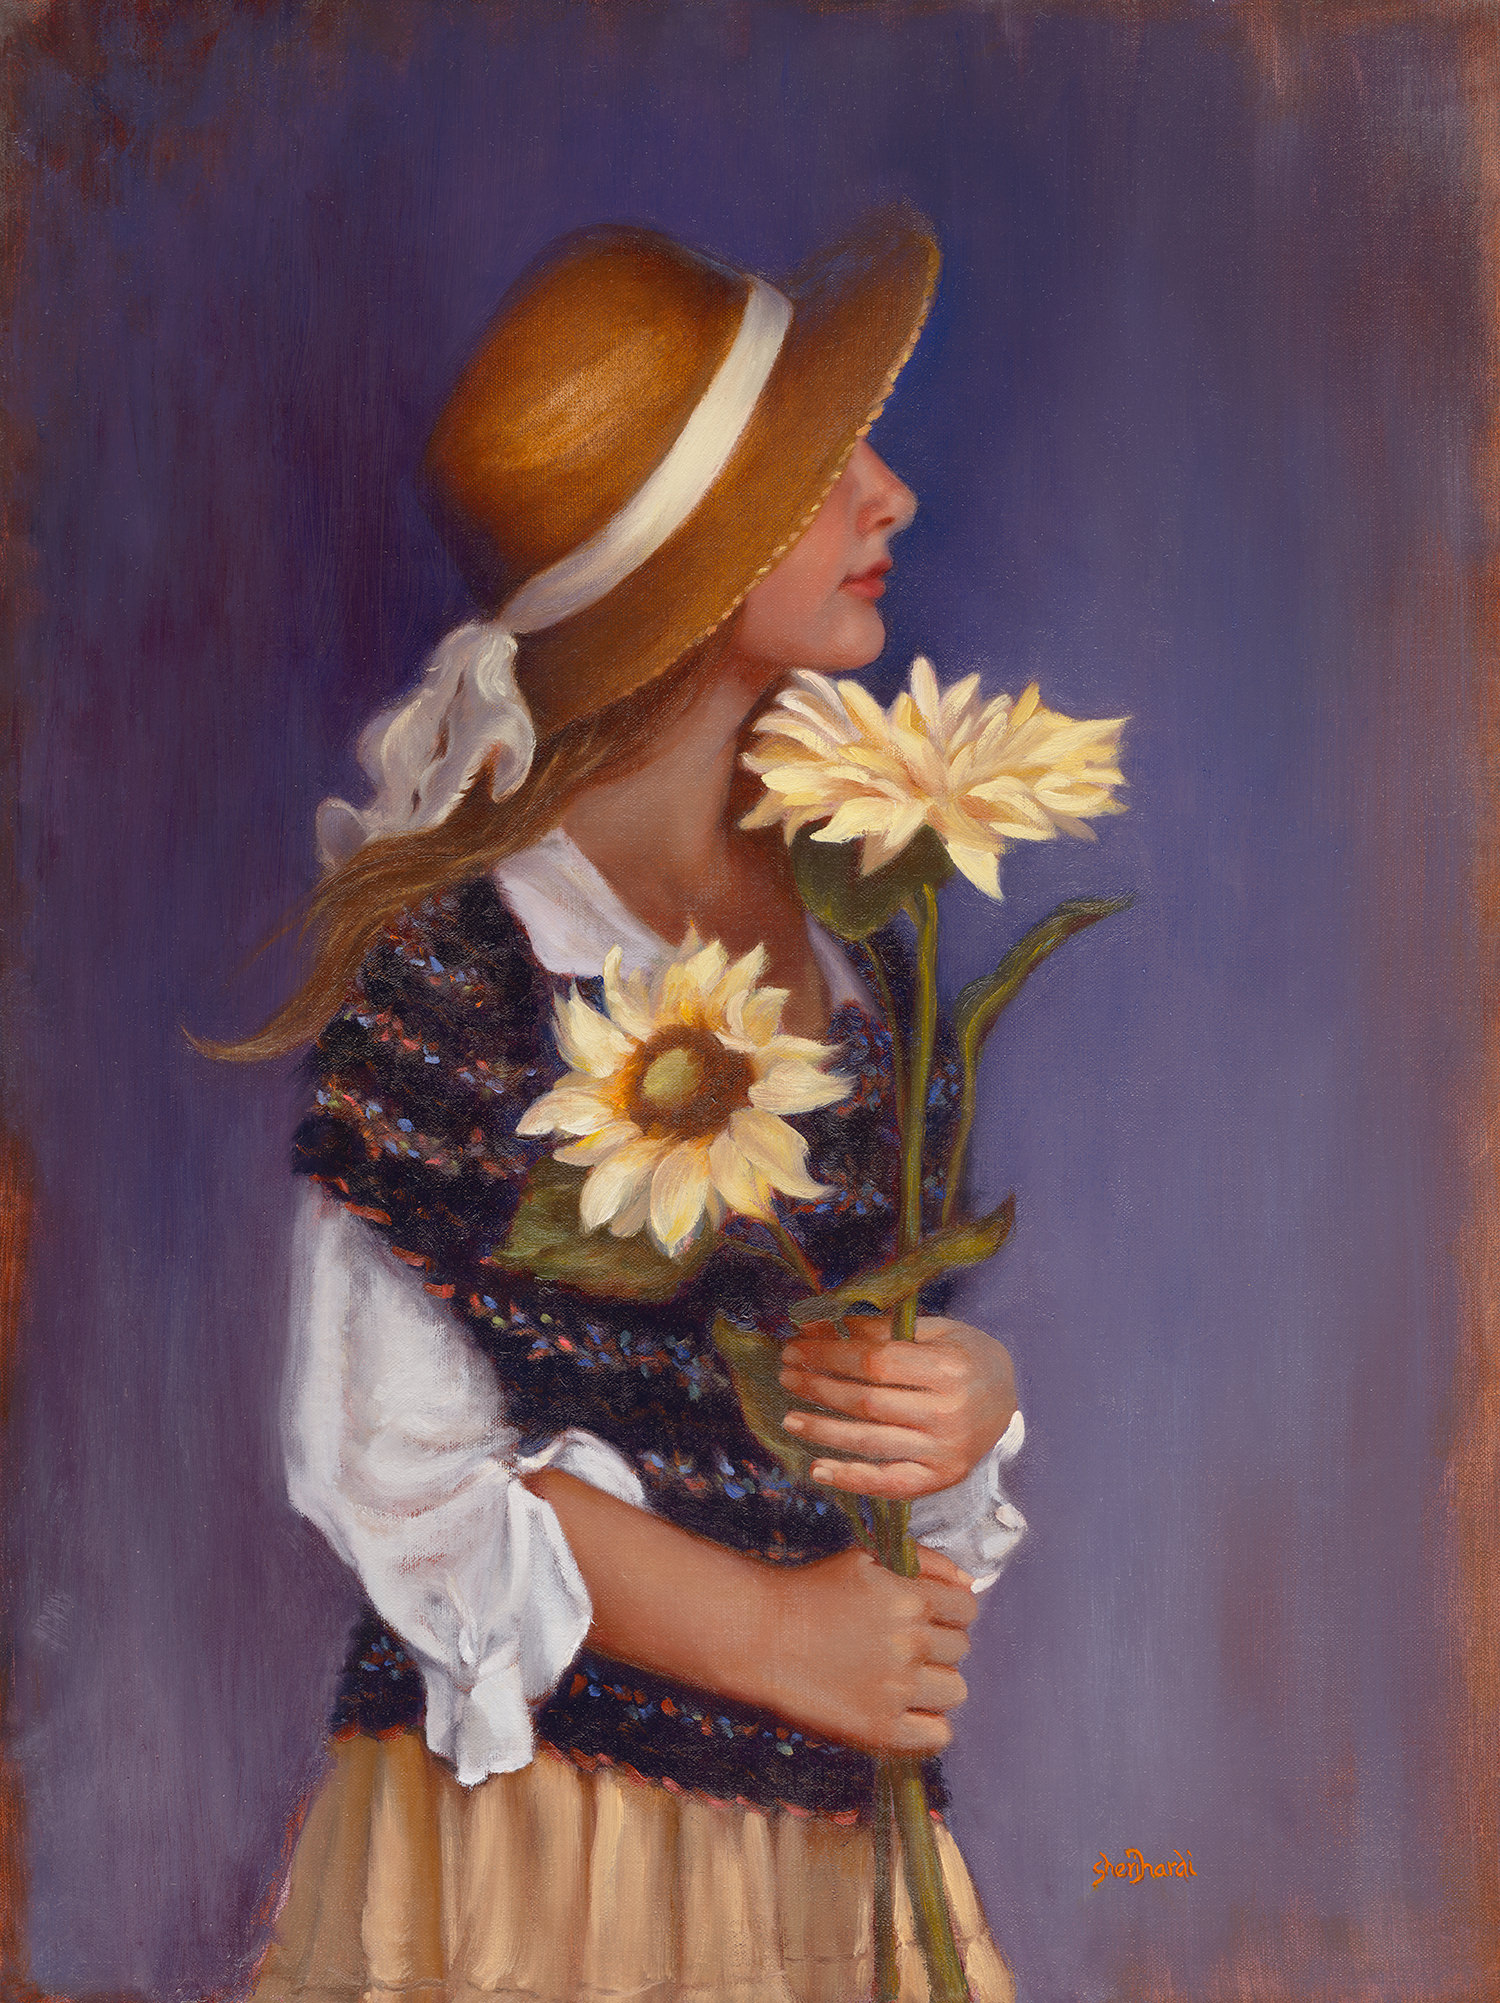 Garden Treasures  - 24 x 18 Oil on Linen